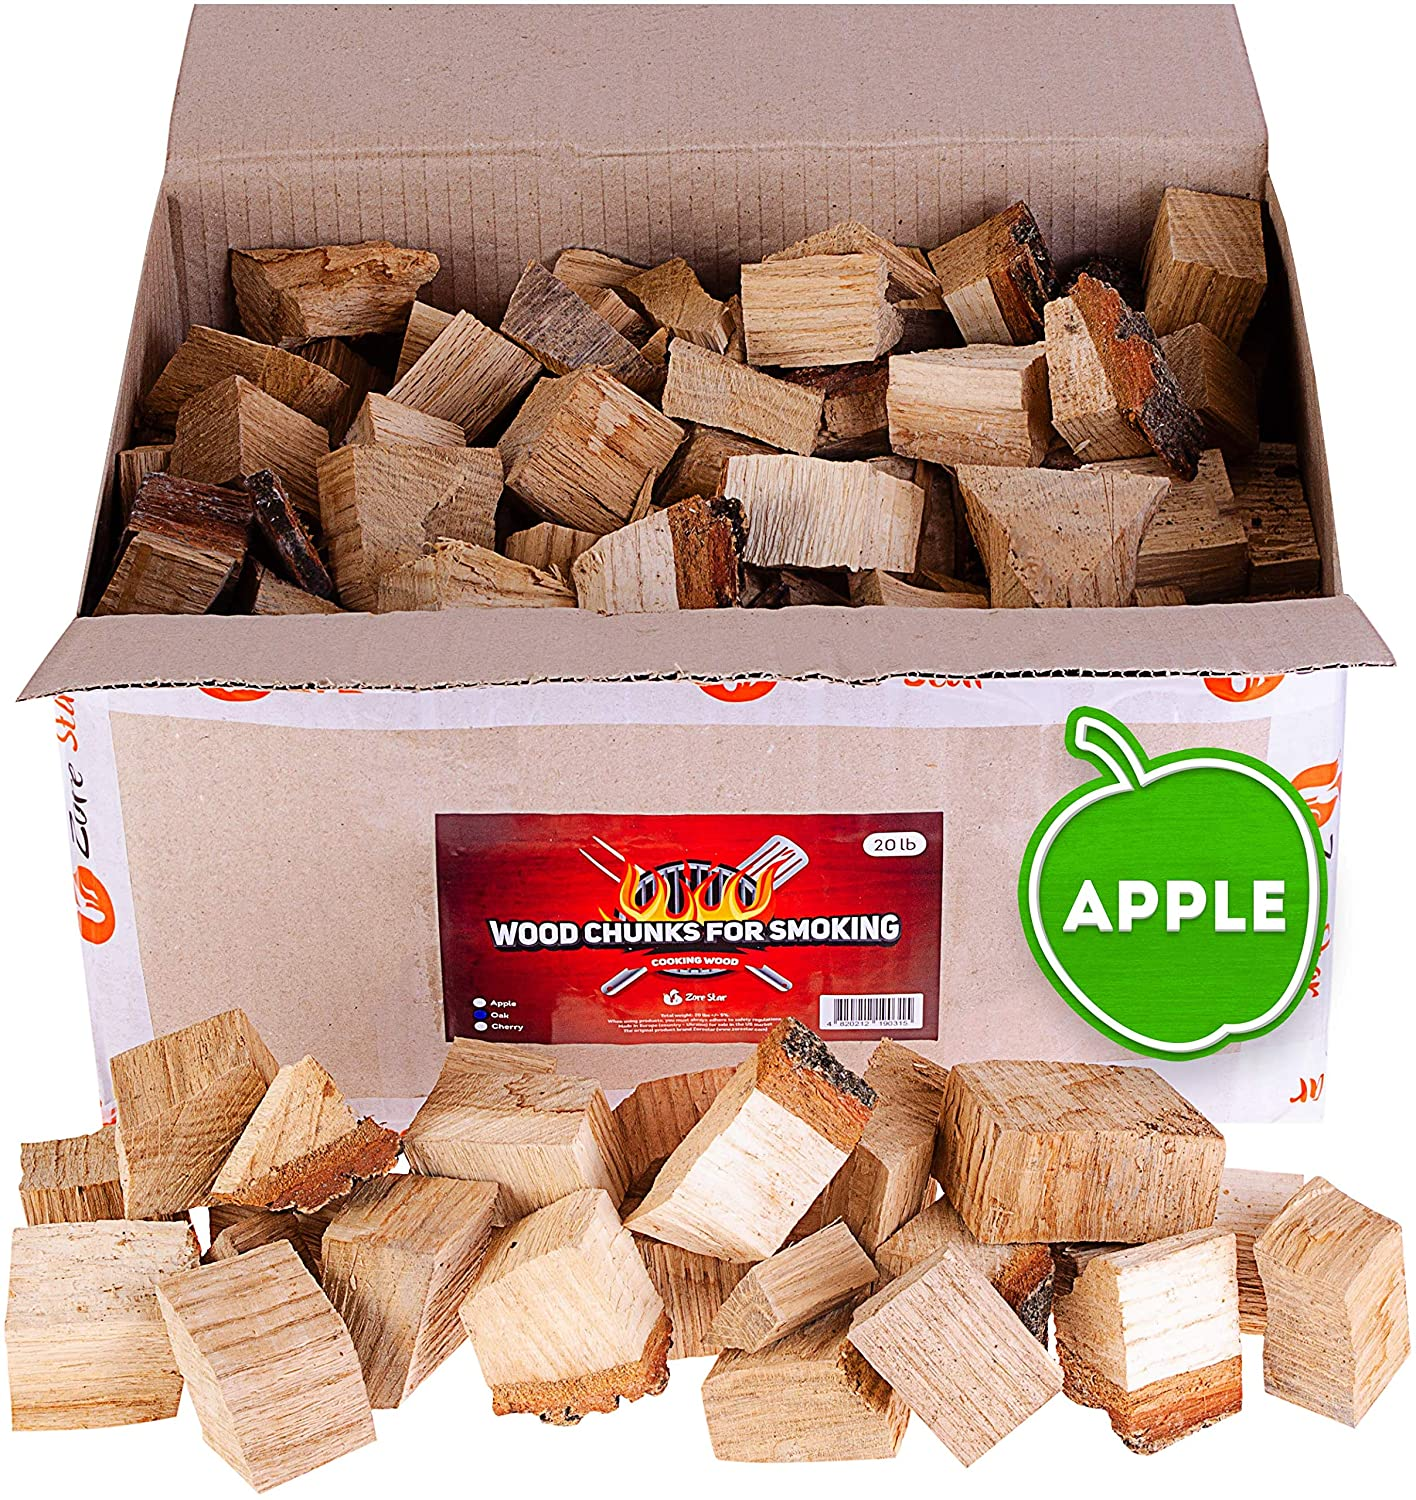 Zorestar applewood logs for BBQ and smoking